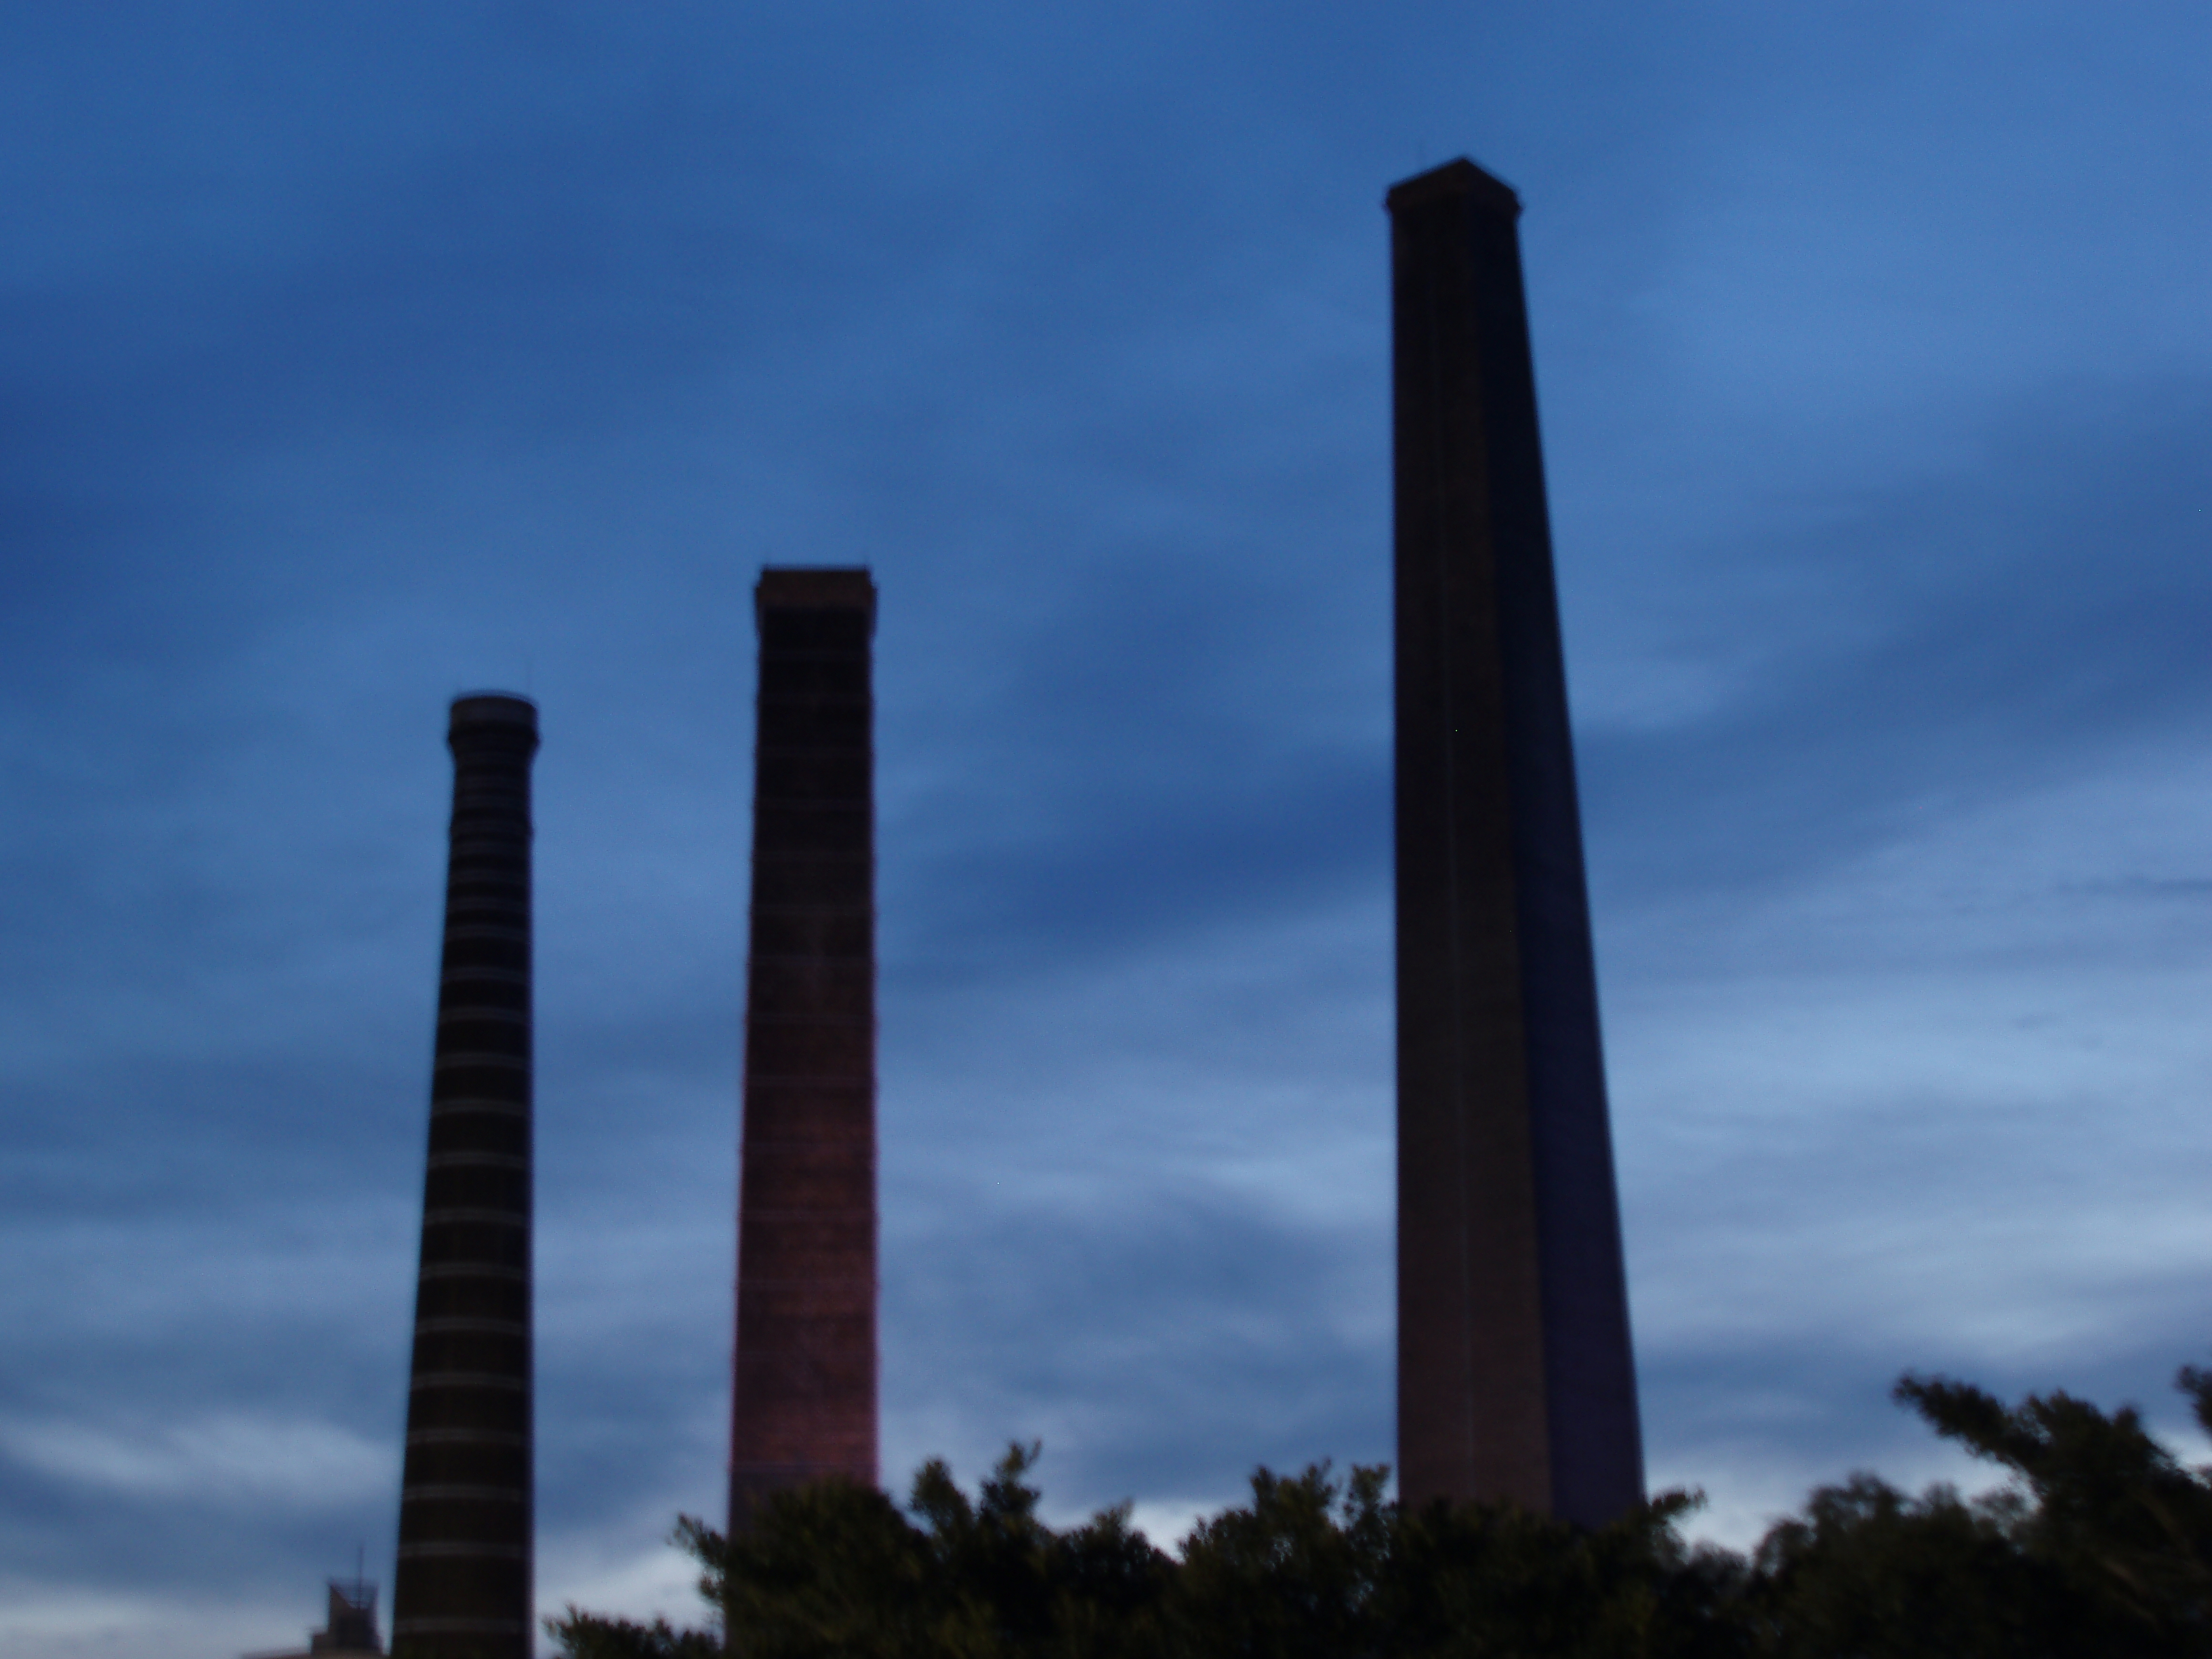 three chimneys, soft ehtereal focus